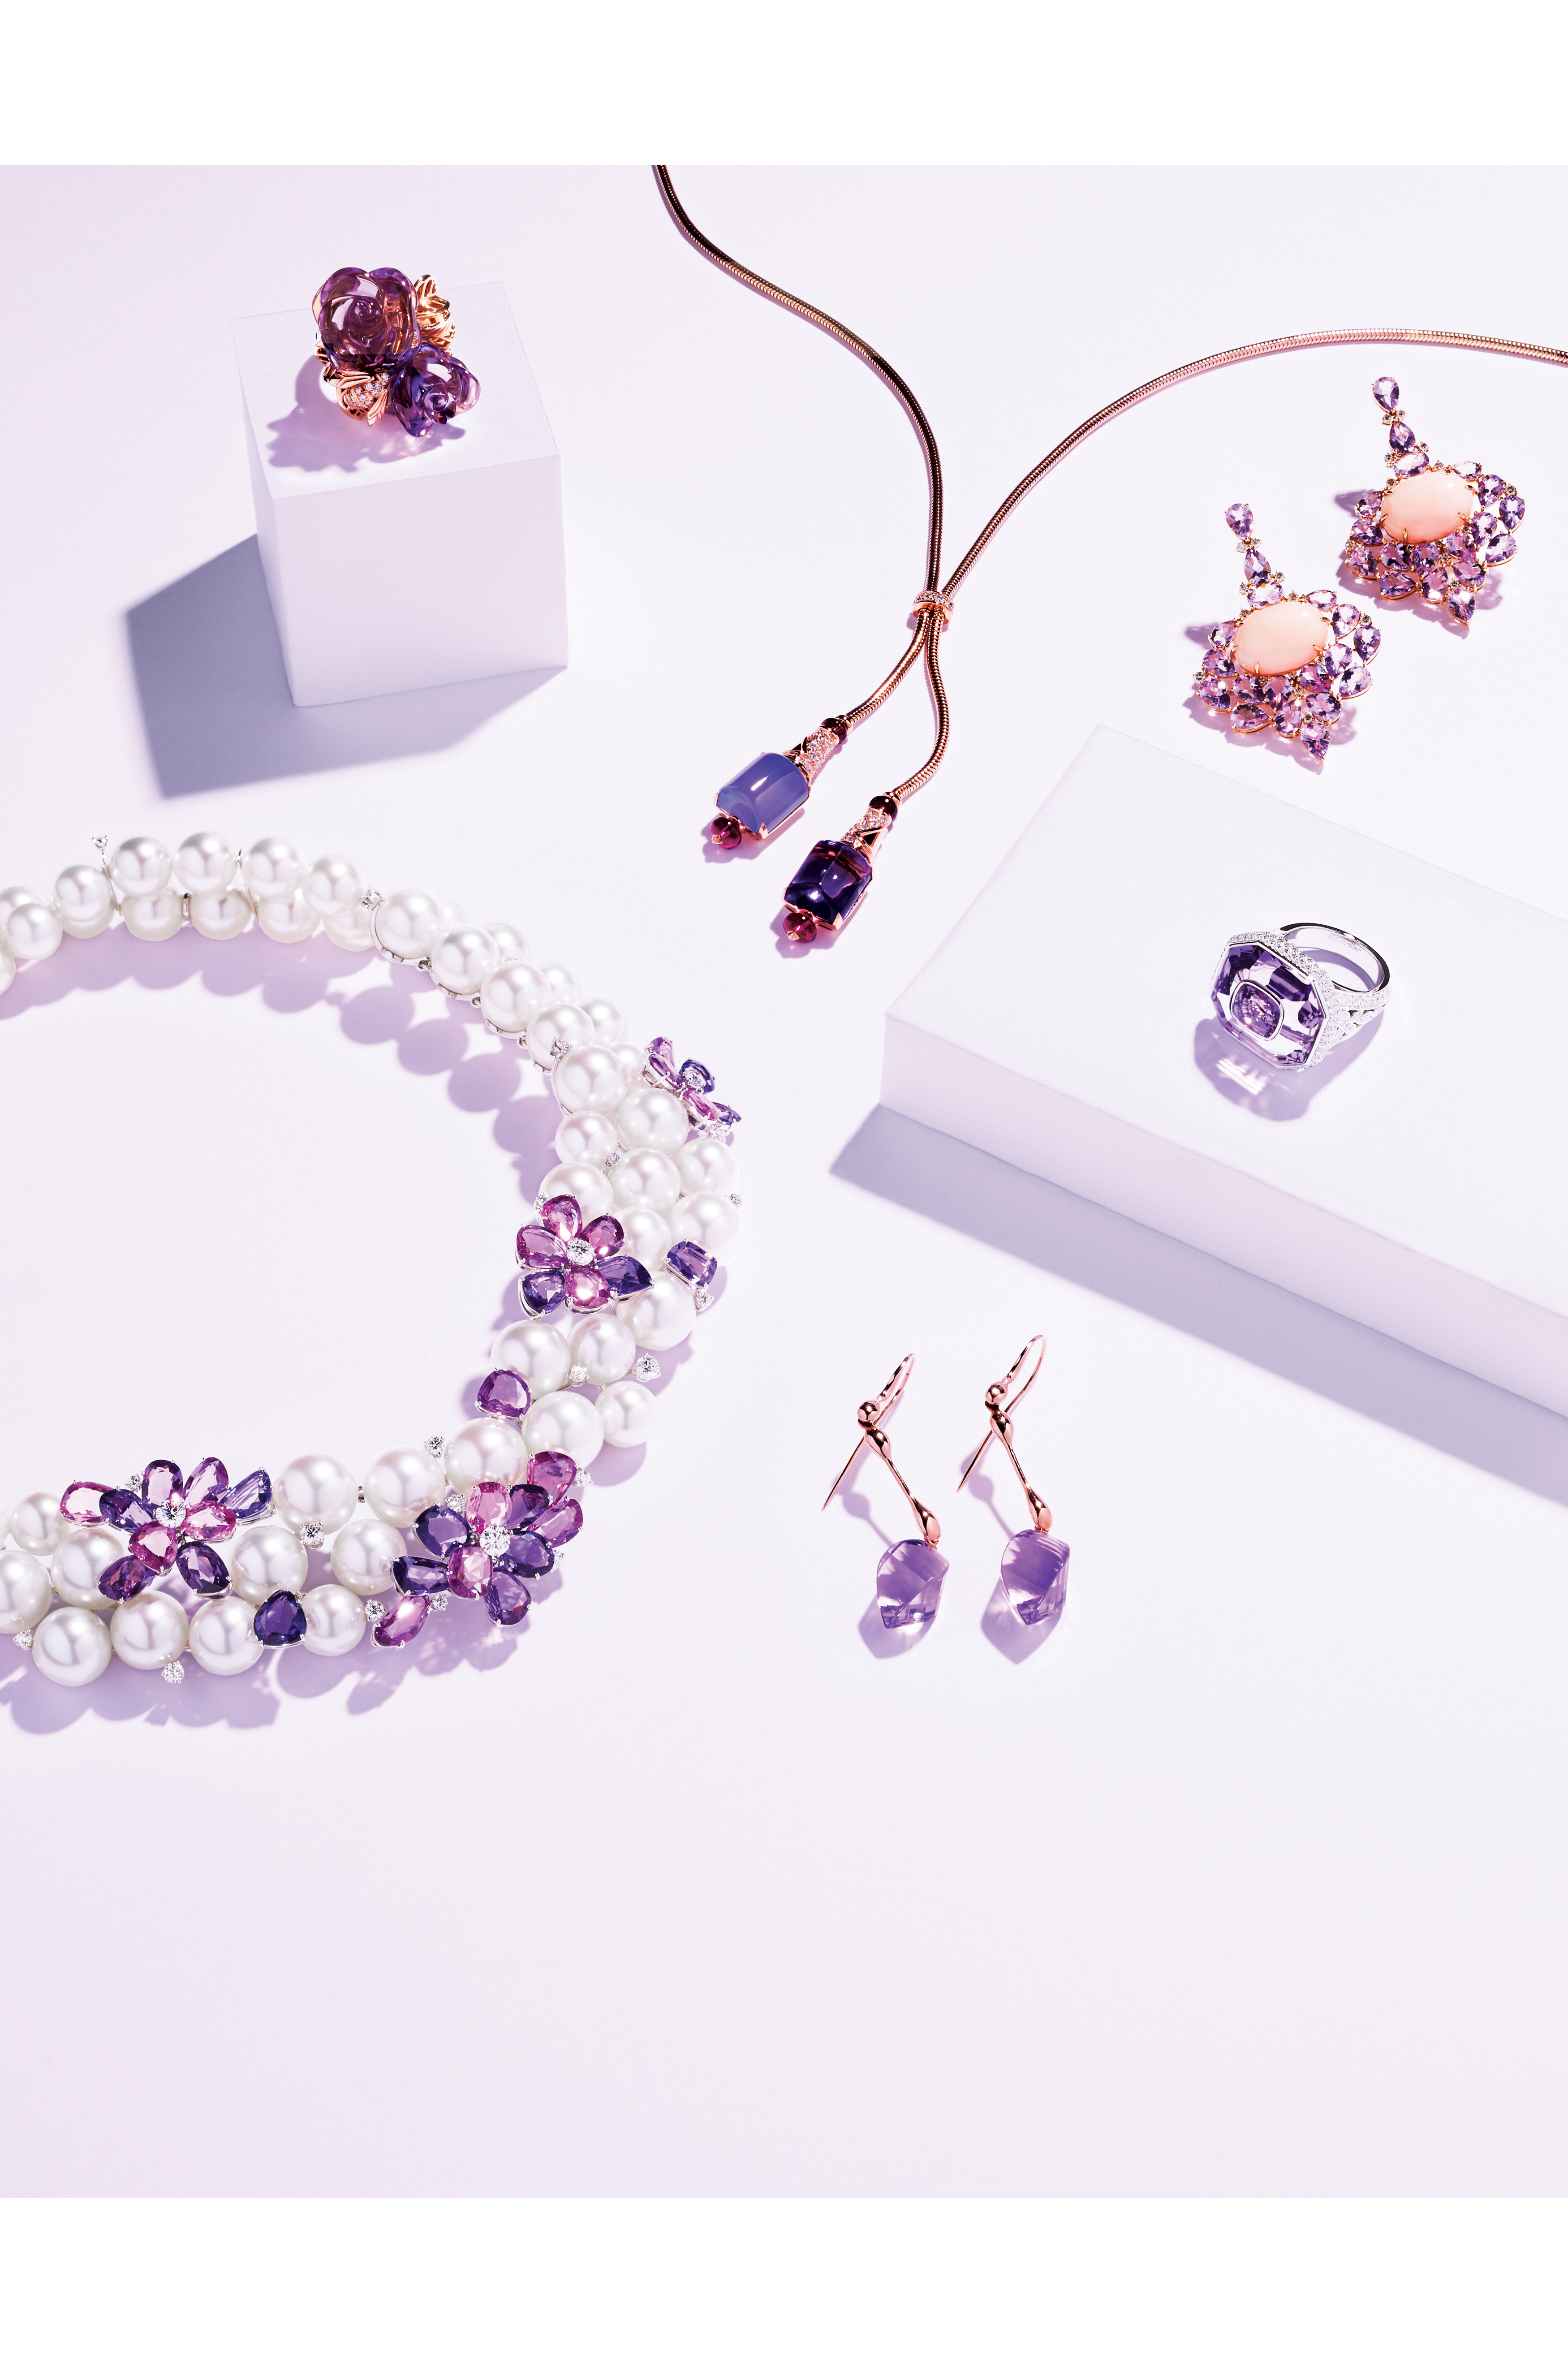 Clockwise from top left: Dior Fine Jewelry's 18-karat rose gold ring with amethysts and diamonds; Bulgari's 18-karat pink gold necklace with amethyst, chalcedony, rubellite and diamonds; Sutra's 18-karat rose gold earrings with angel skin coral and rose de France amethysts; Cartier's platinum ring with sapphires, amethysts and diamonds;  Lucifer Vir Honestus' 18-karat rose gold and amethyst earrings; Mikimoto's 18-karat white gold necklace with cultured pearls, sapphires and diamonds.